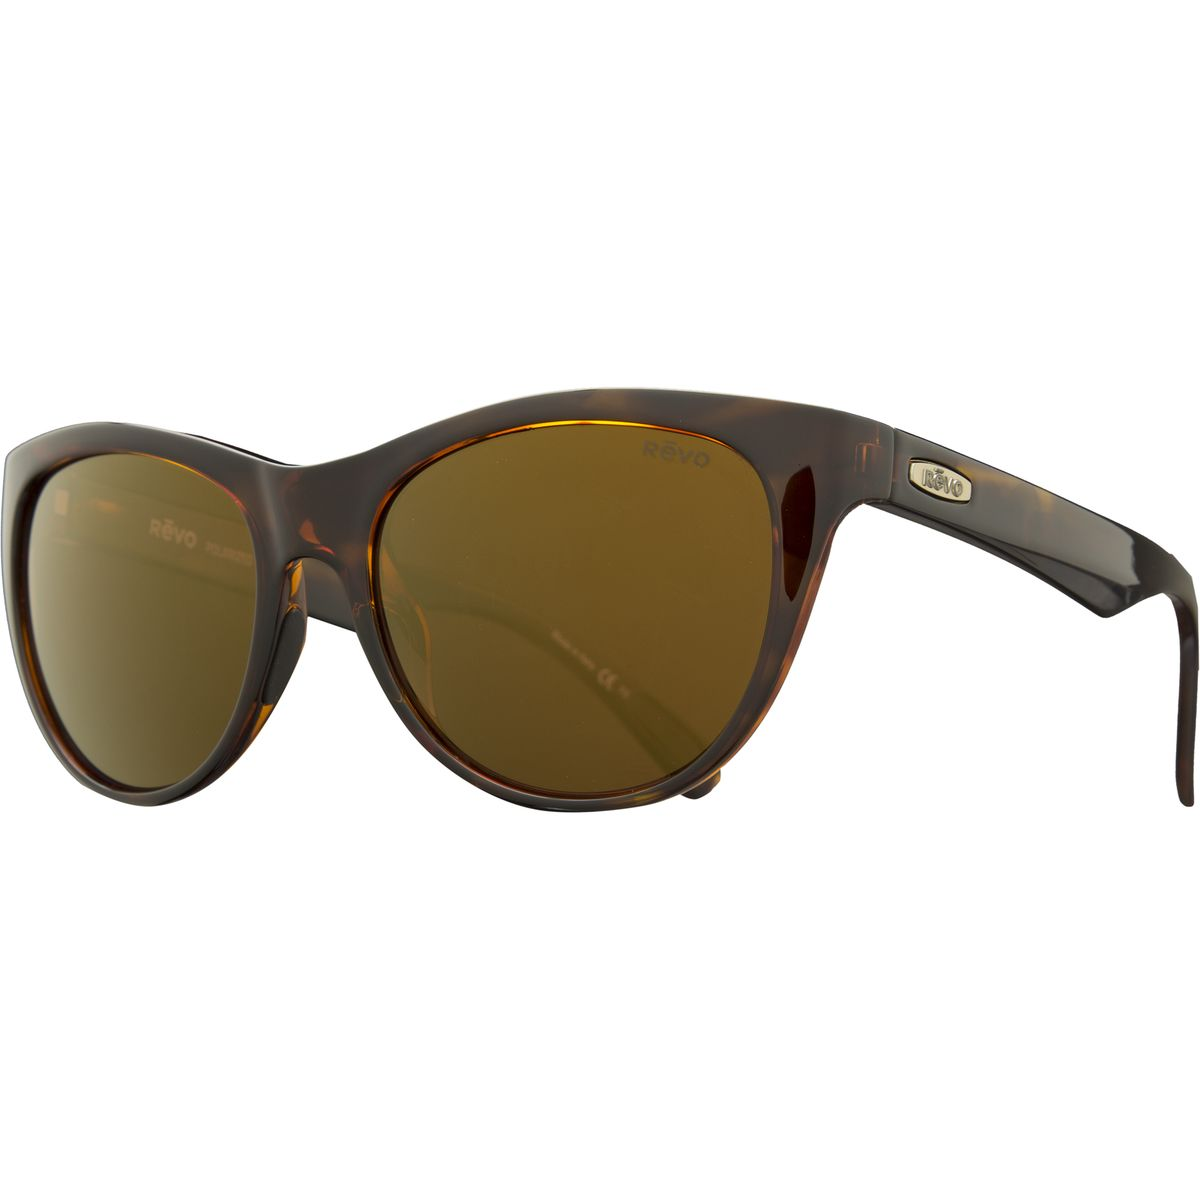 Revo Barclay Polarized Sunglasses  Womens Tortoise Open Road One Size